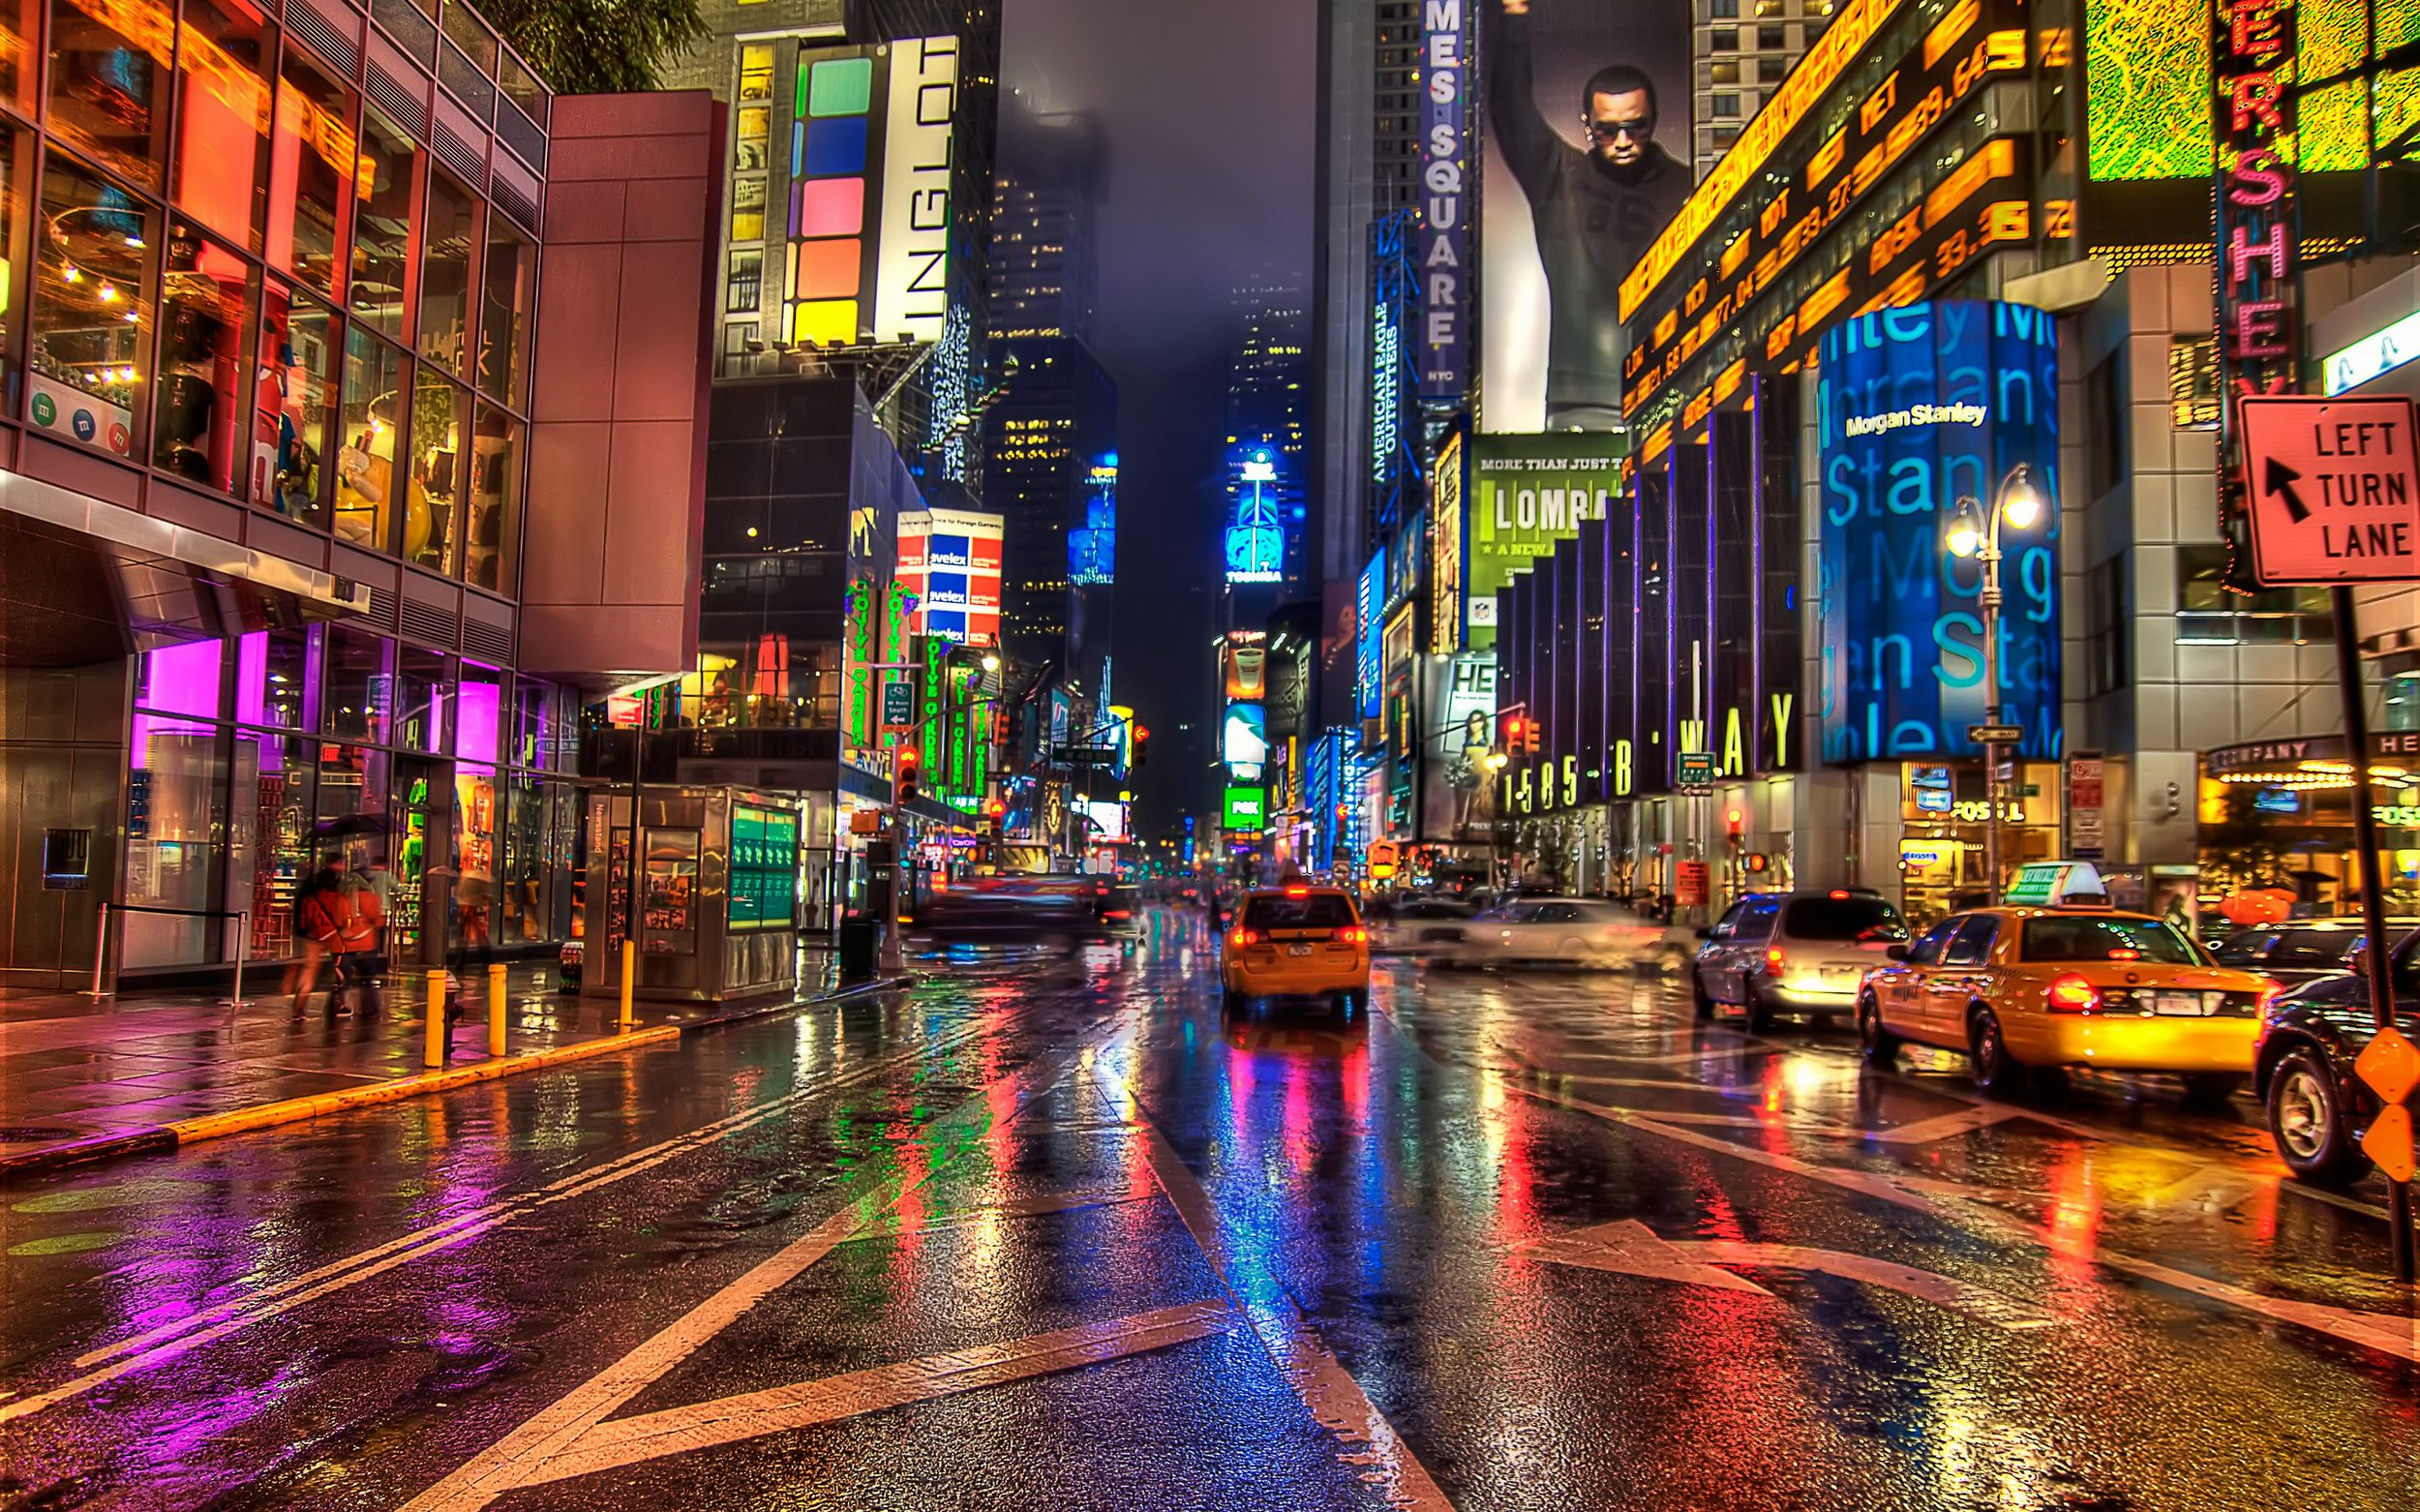 New York City Times Square Wallpaper HD wallpaper background 2500x1562